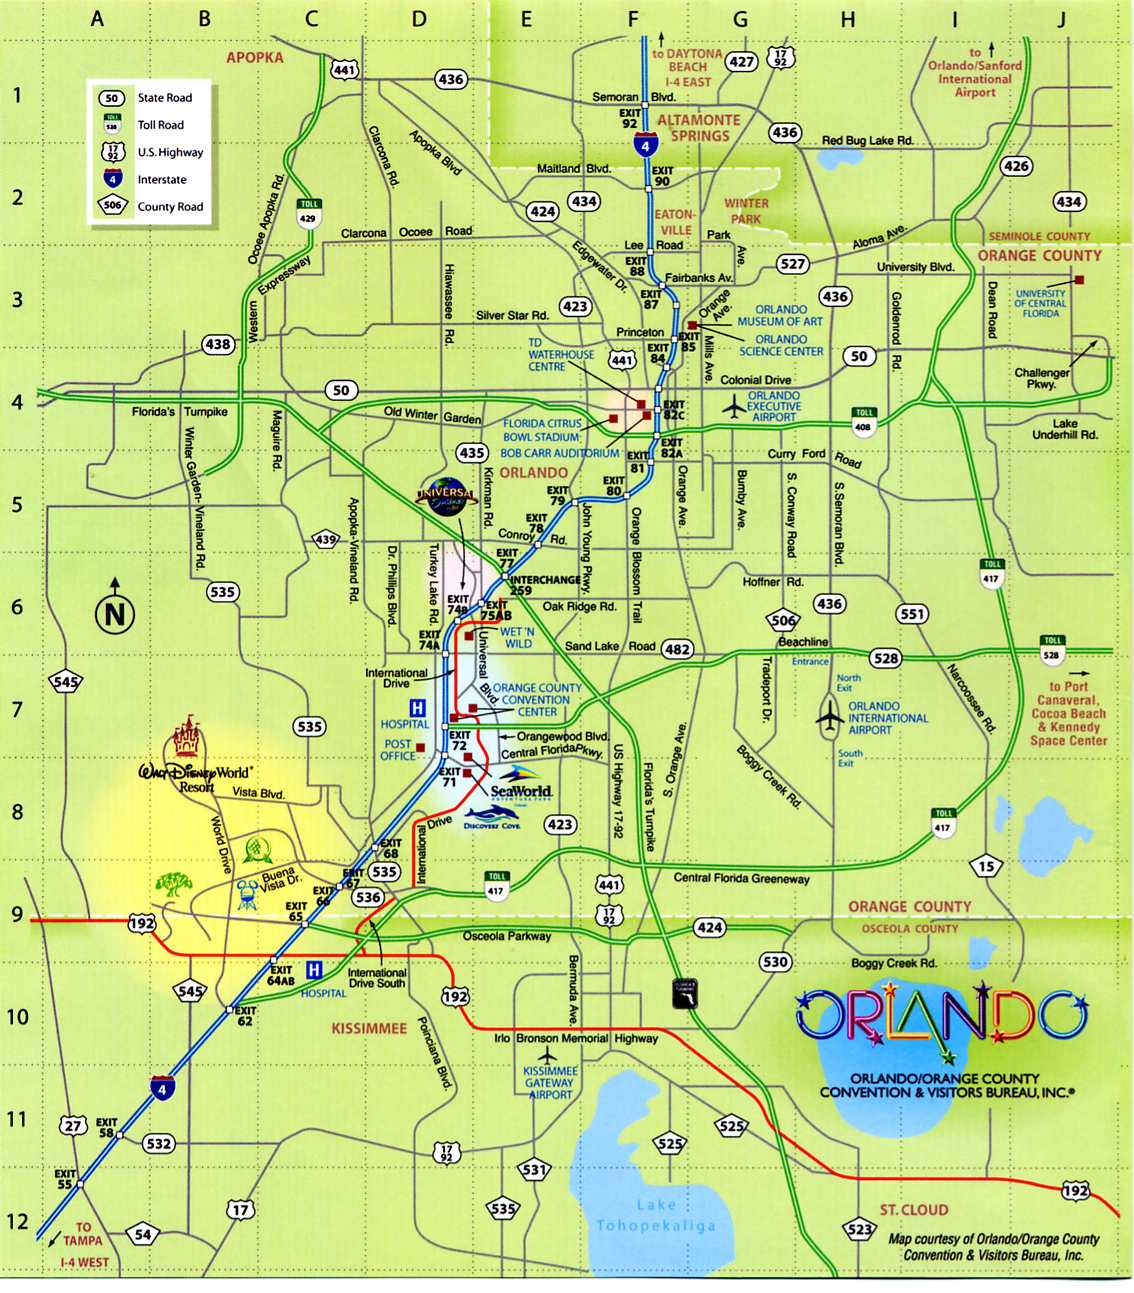 Orlando Metro Map.Orlando Maps City Maps